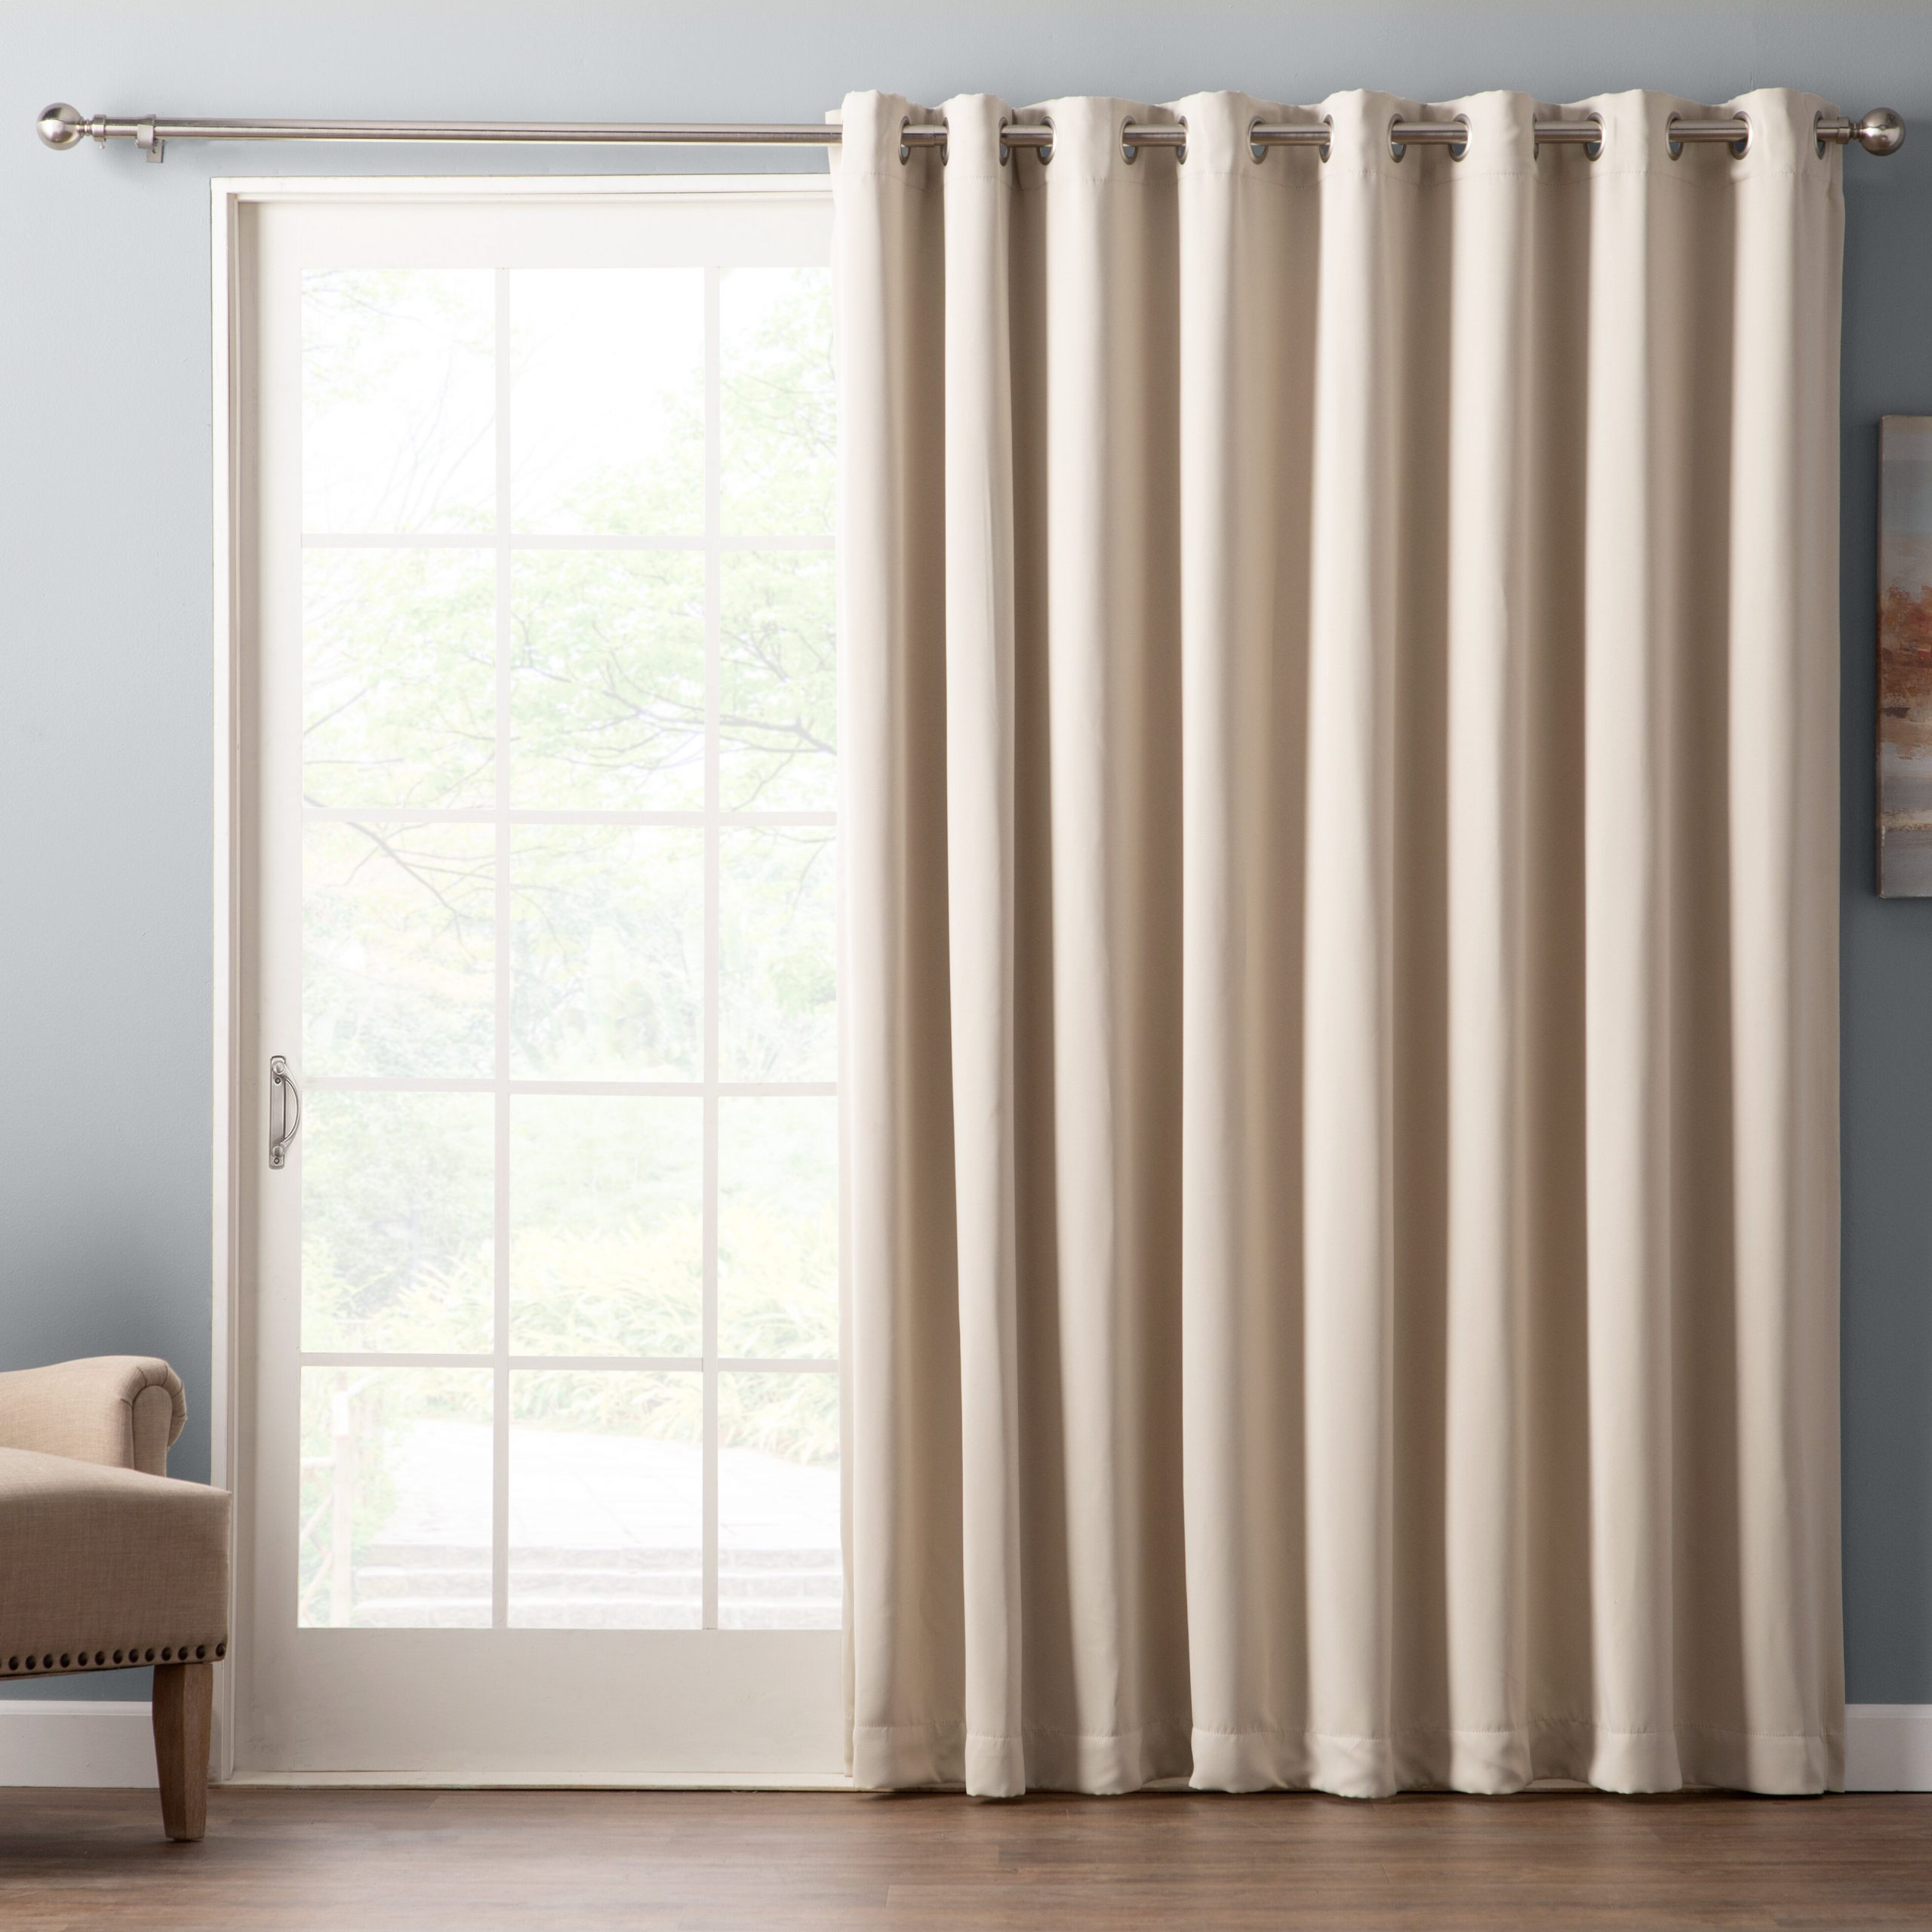 Grommet Blackout Patio Door Window Curtain Panels In Current Wayfair Basics Solid Blackout Grommet Single Patio Curtain (View 9 of 20)